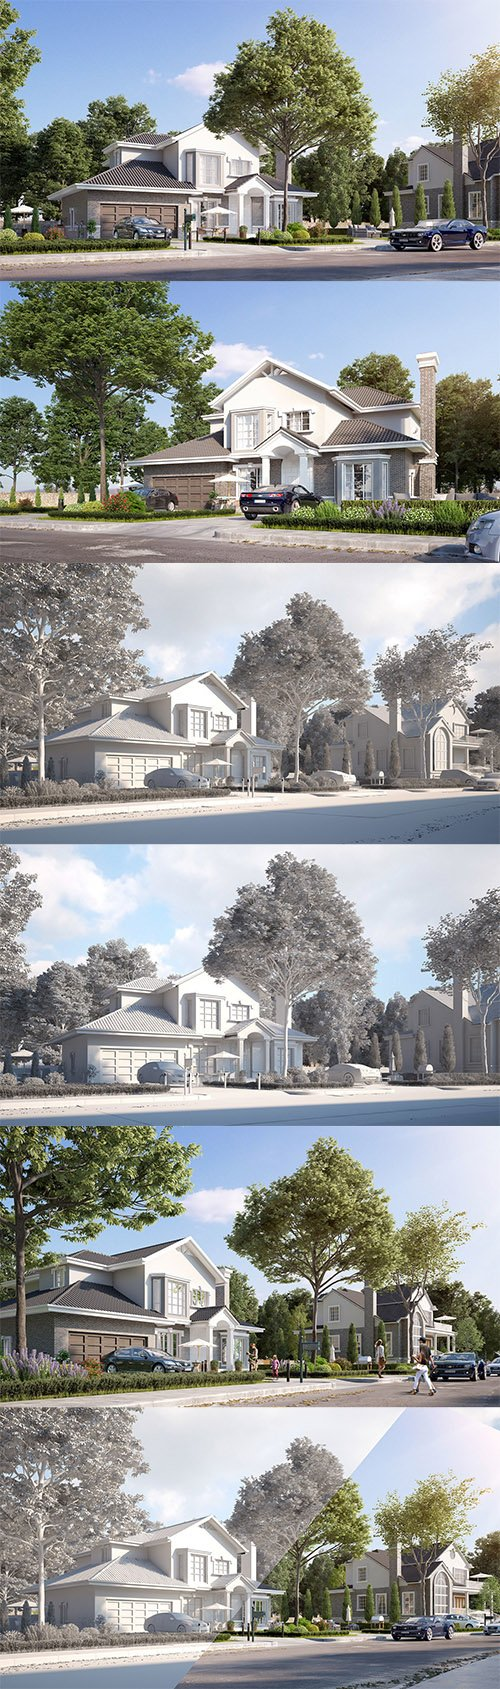 Exterior beautiful house best rendering Low-poly 3D model